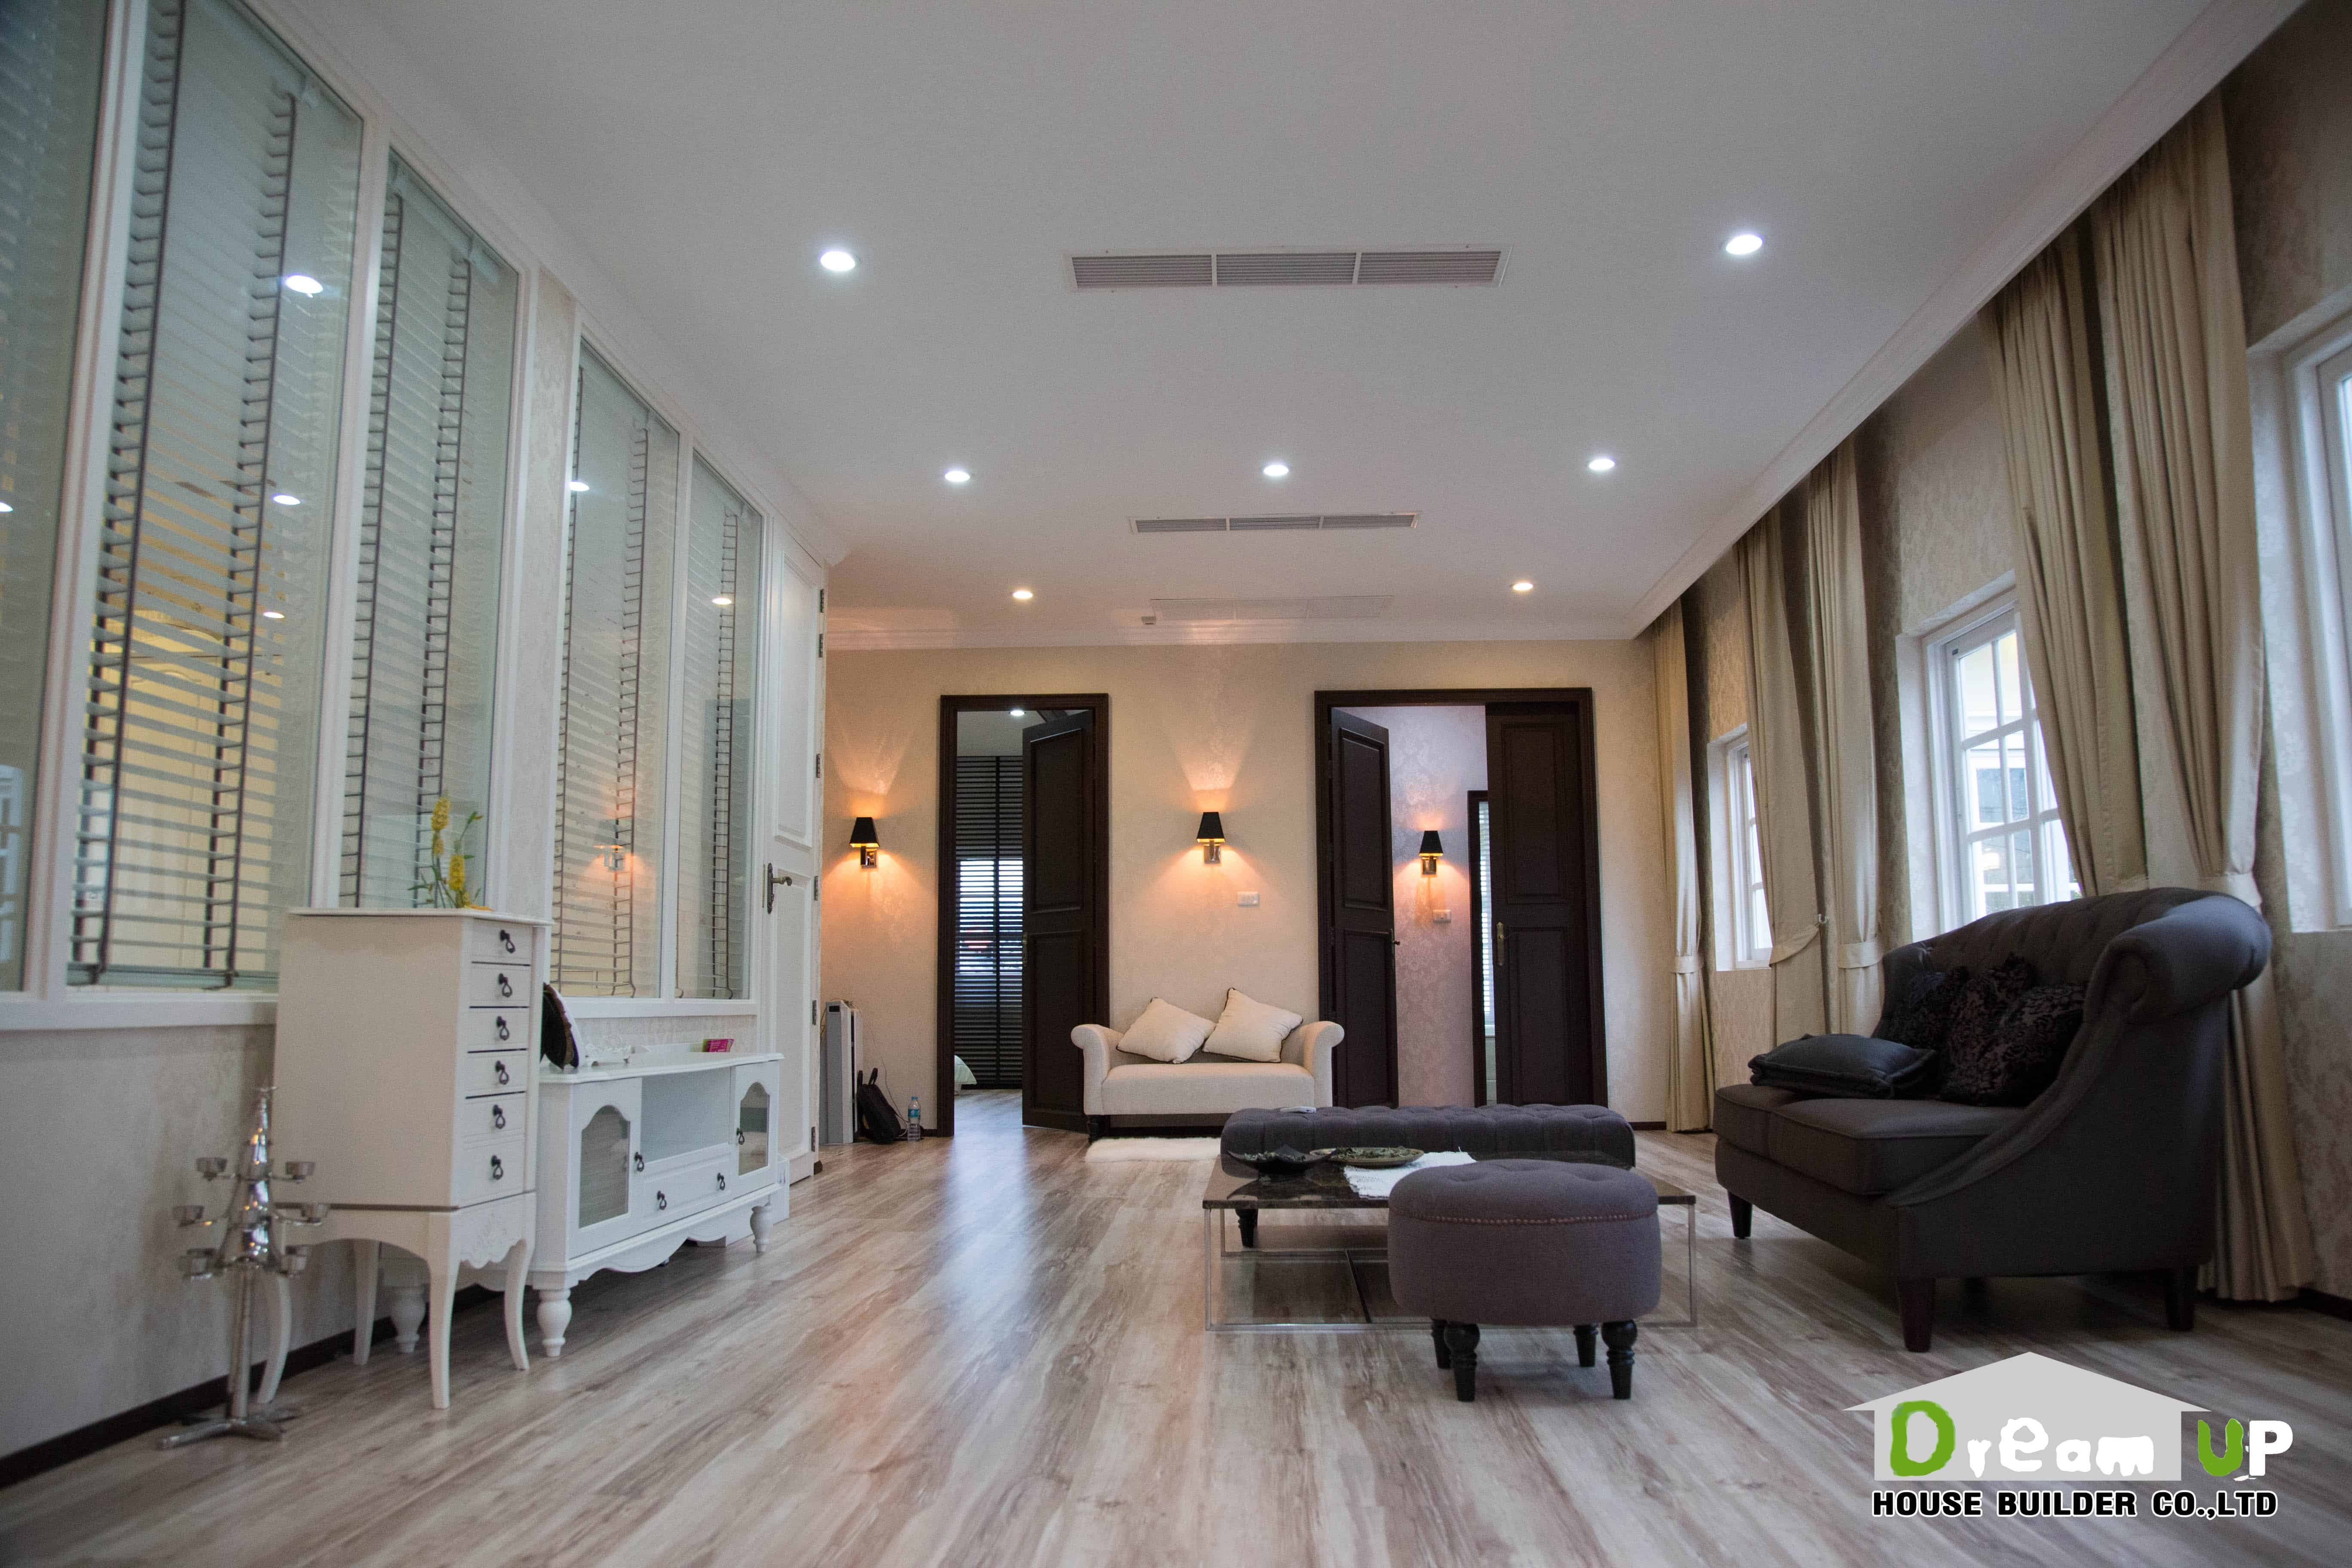 Home interior design picture_16 - See Our Houses Already Completed